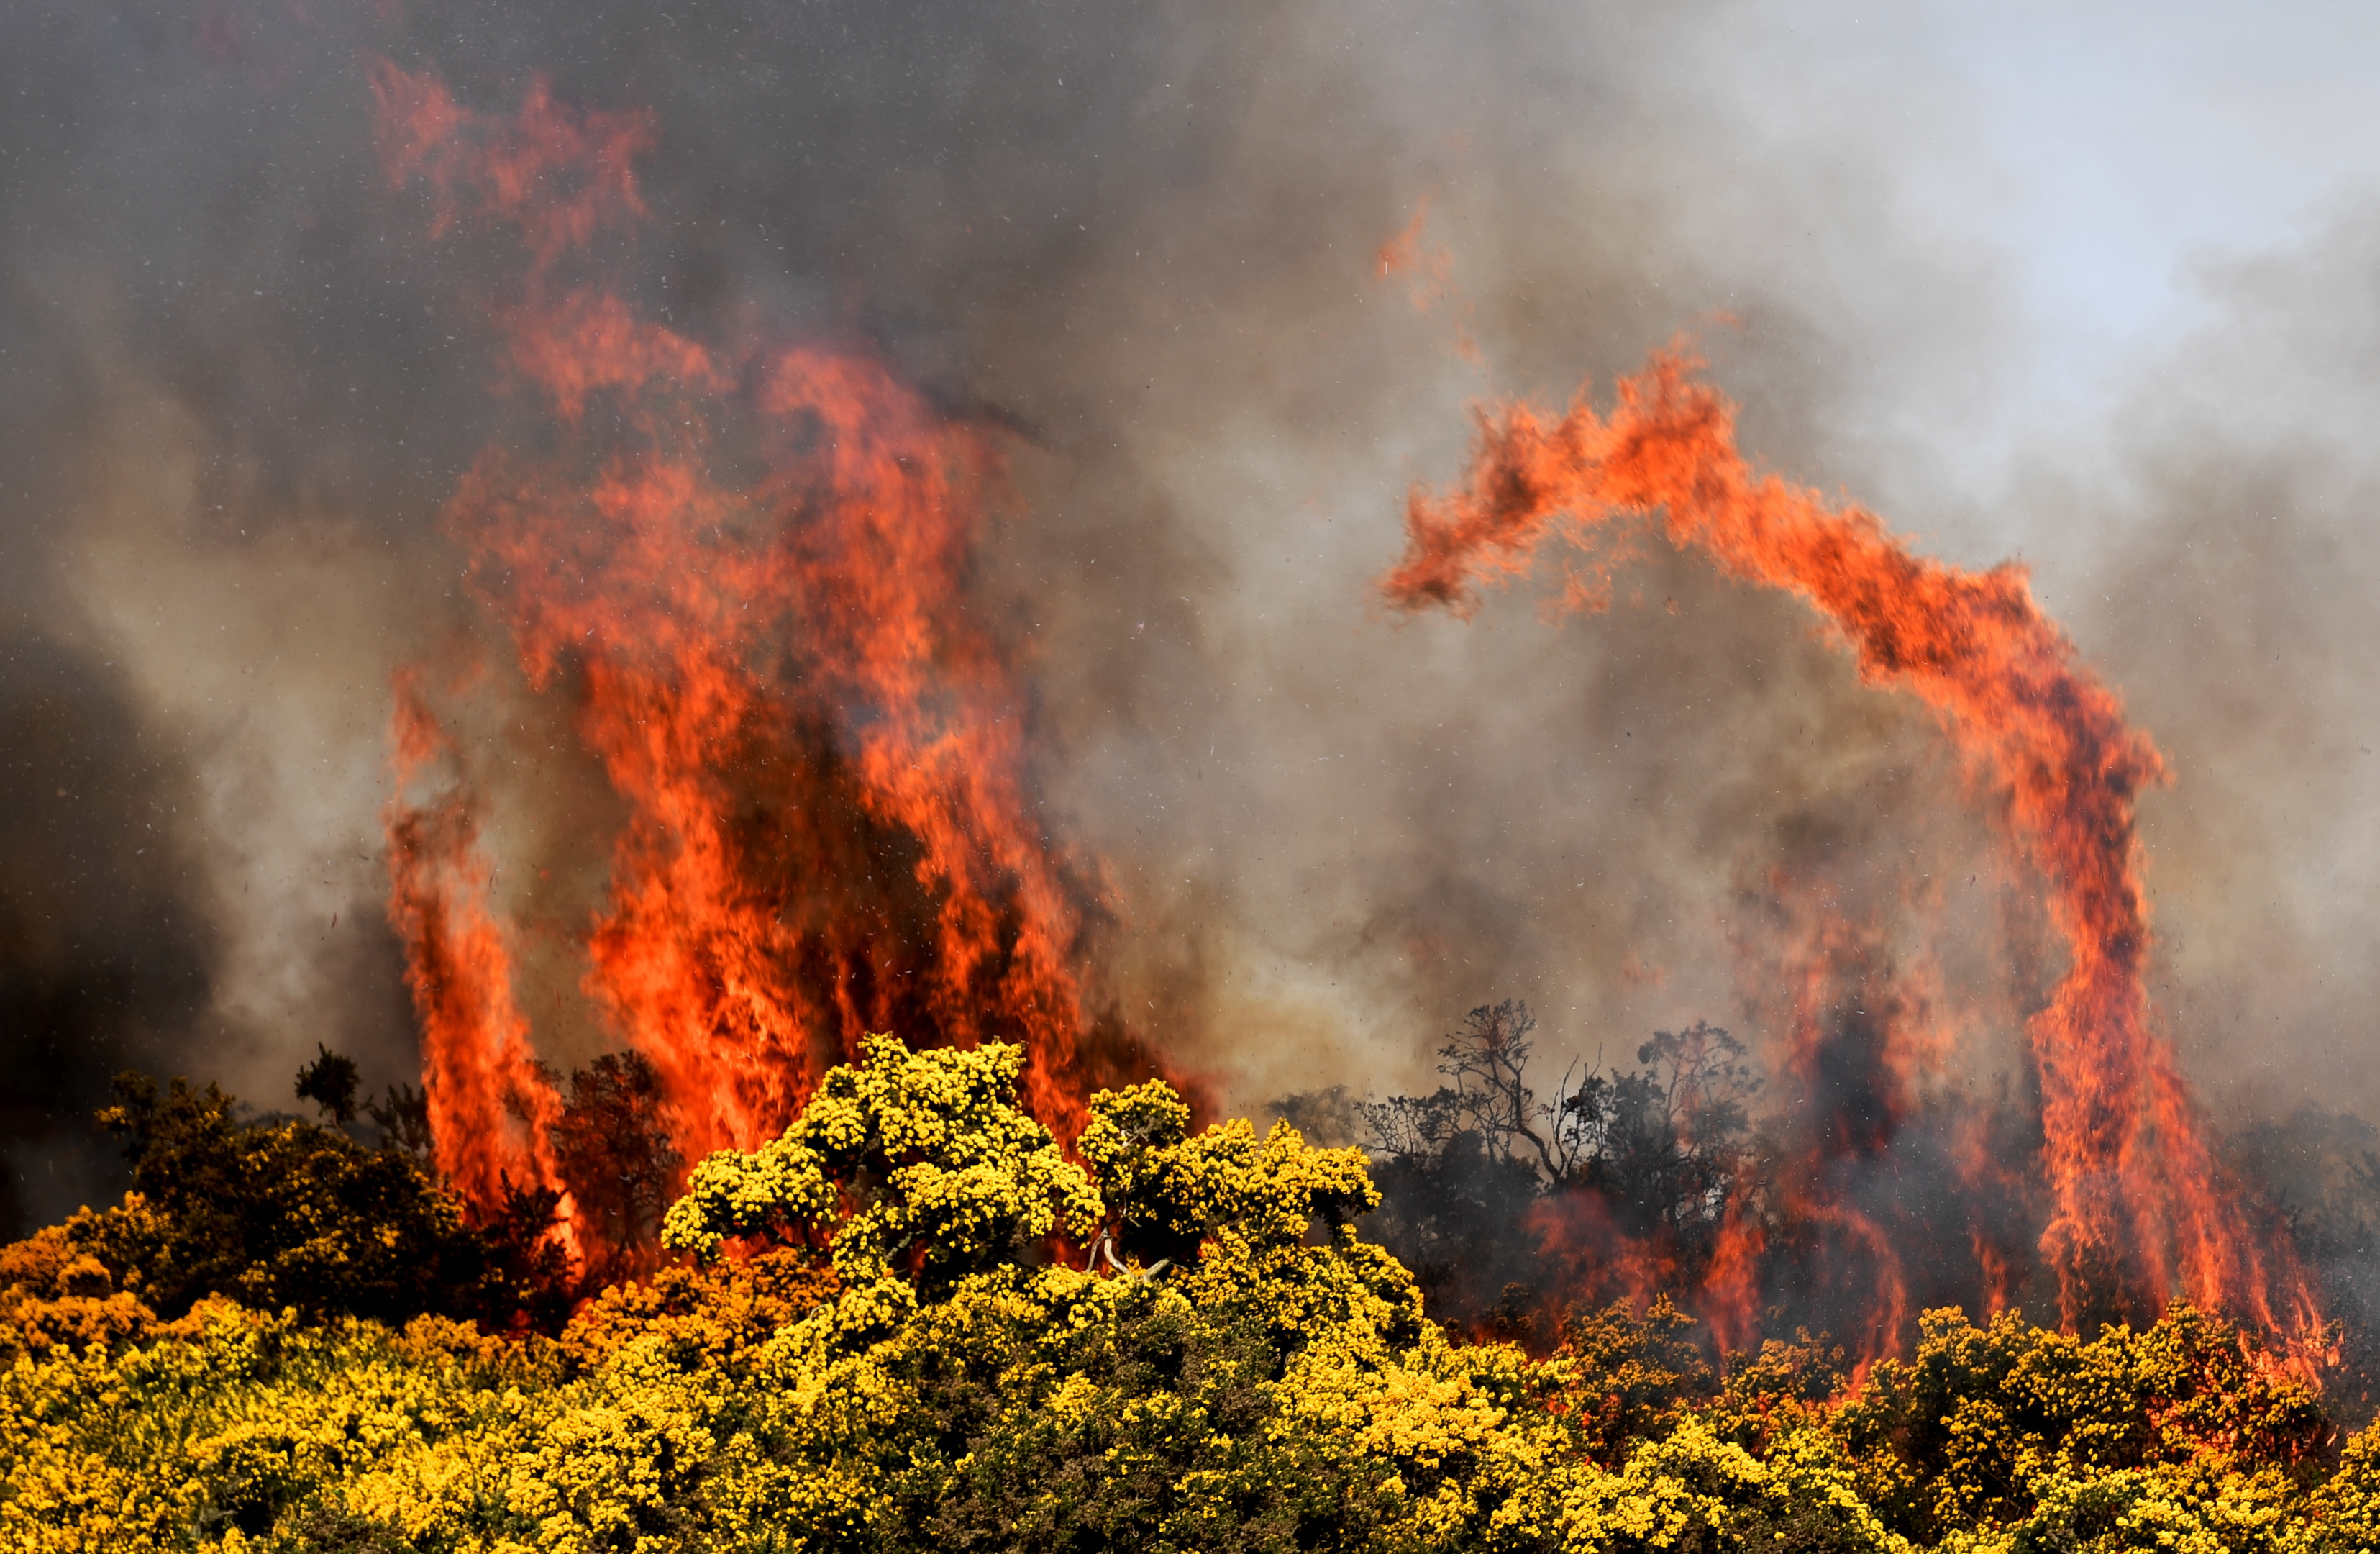 blaze:  Flames engulfed grass in the Kingswells area.